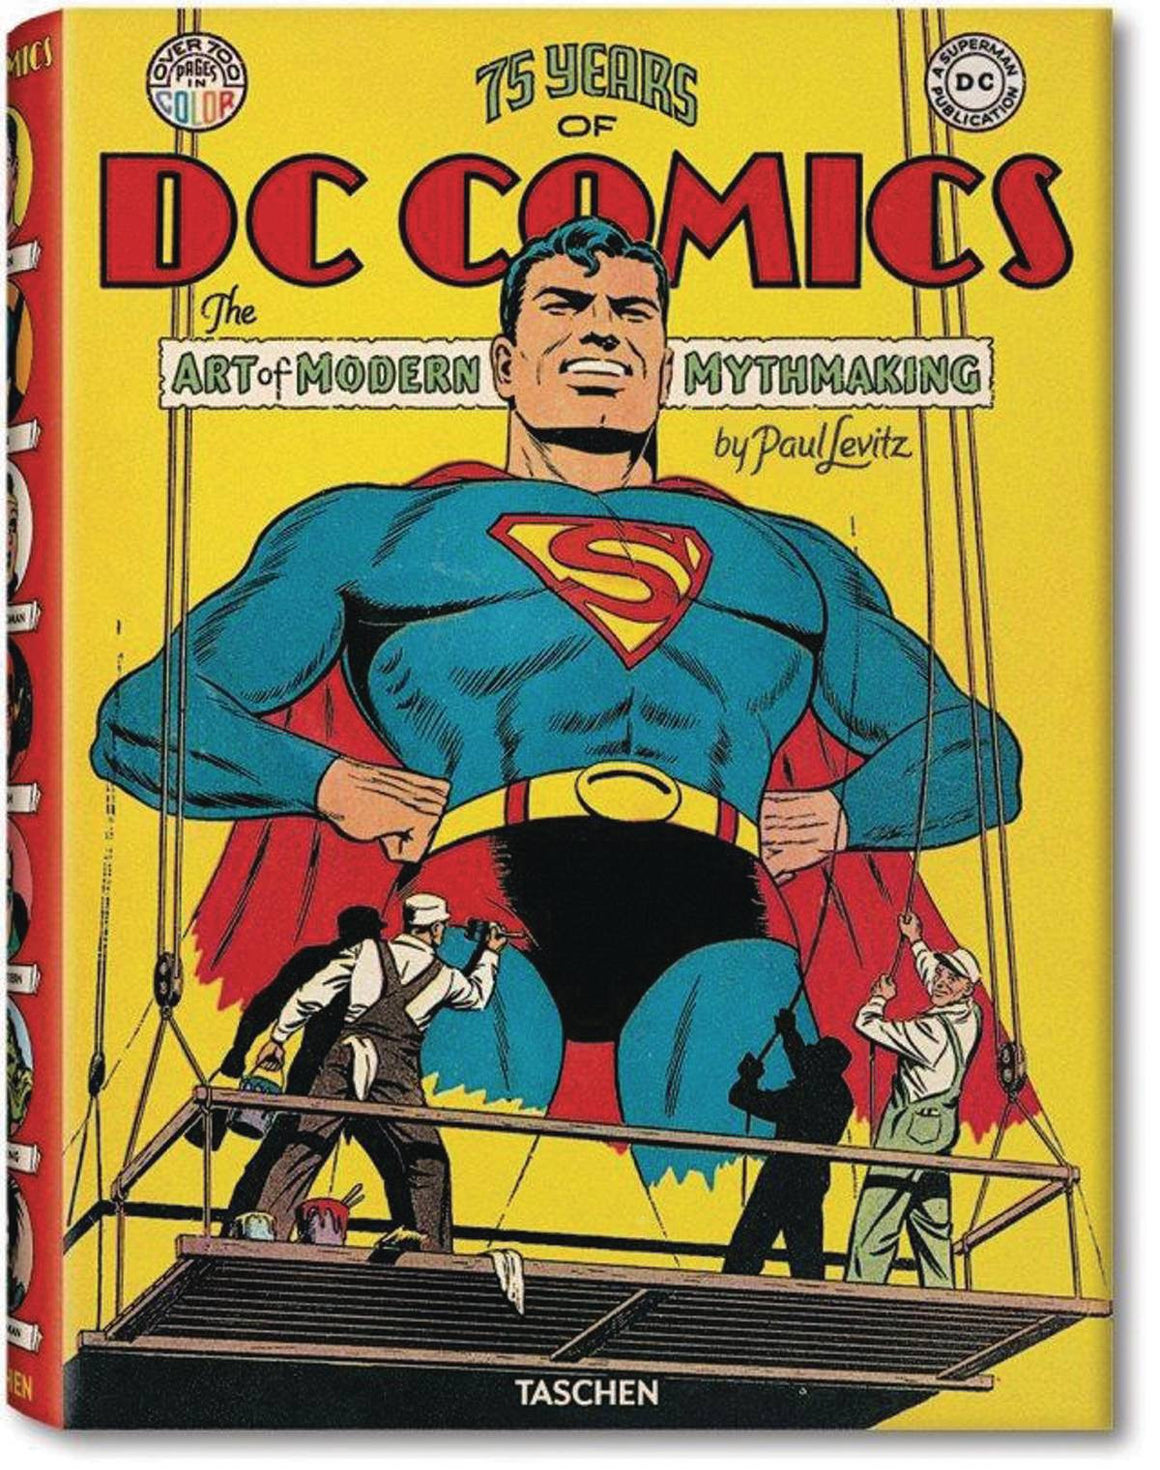 TASCHEN 75 YEARS OF DC COMICS HC